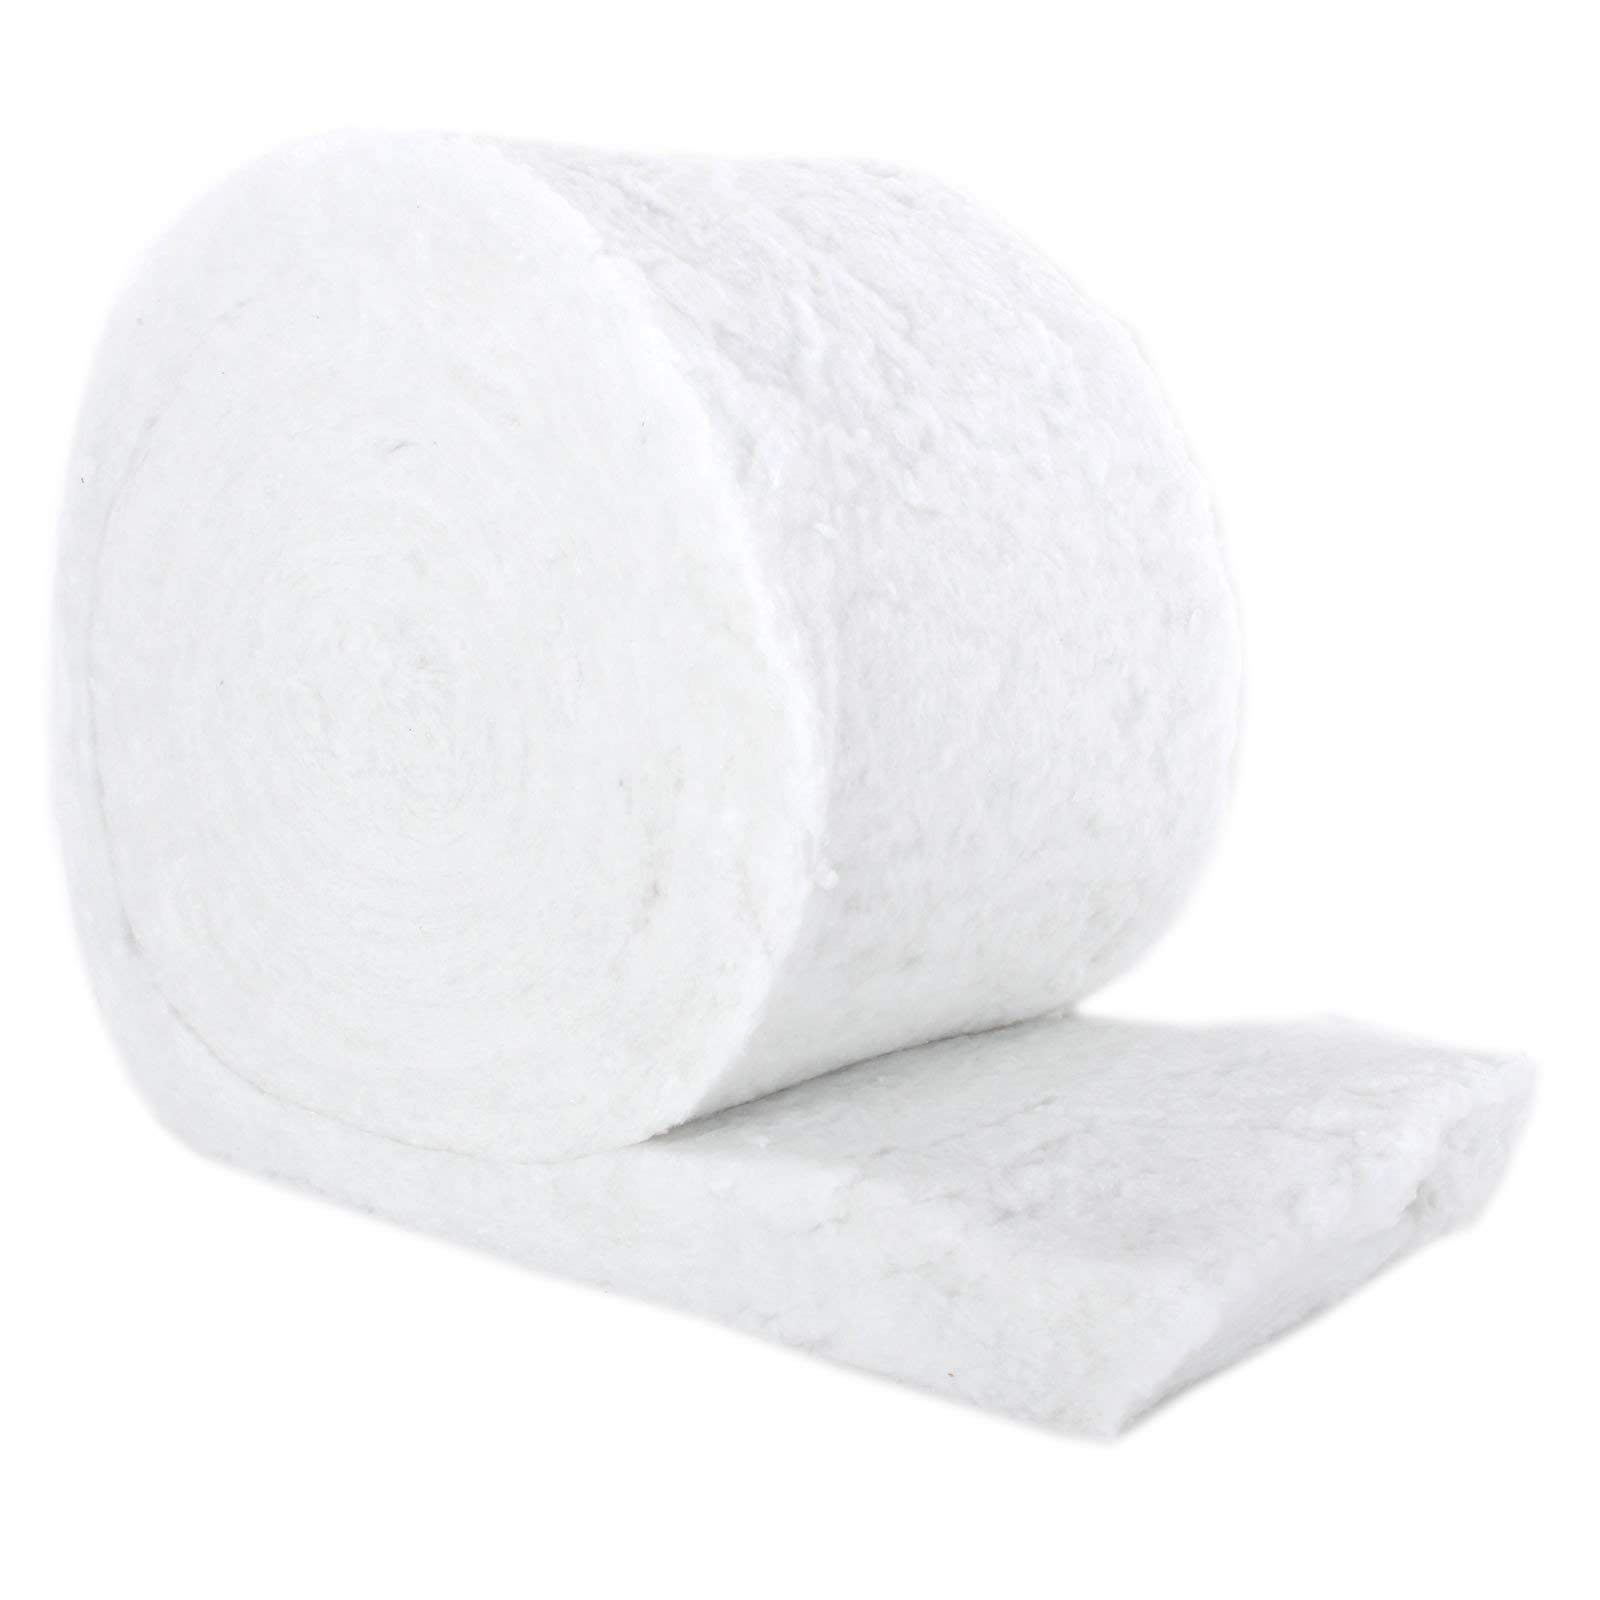 Dodo Thermo Fleece Camper Van Insulation 5m Roll (1.95sq.m) Recycled Plastic Bottle PET